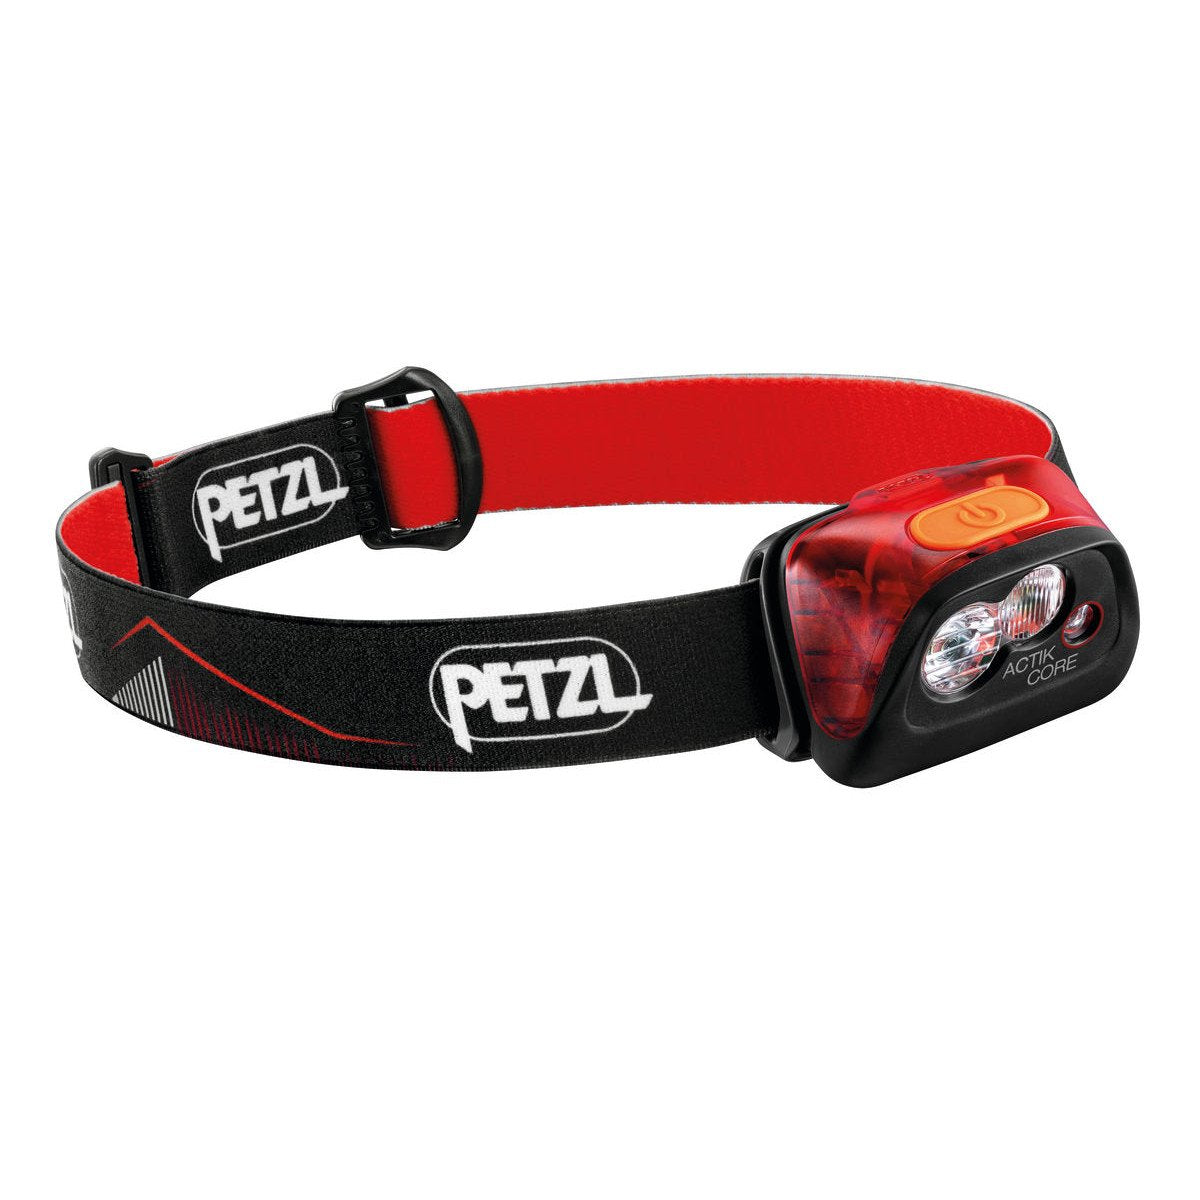 Petzl Actik Core Headtorch in Red showing strap and front of torch